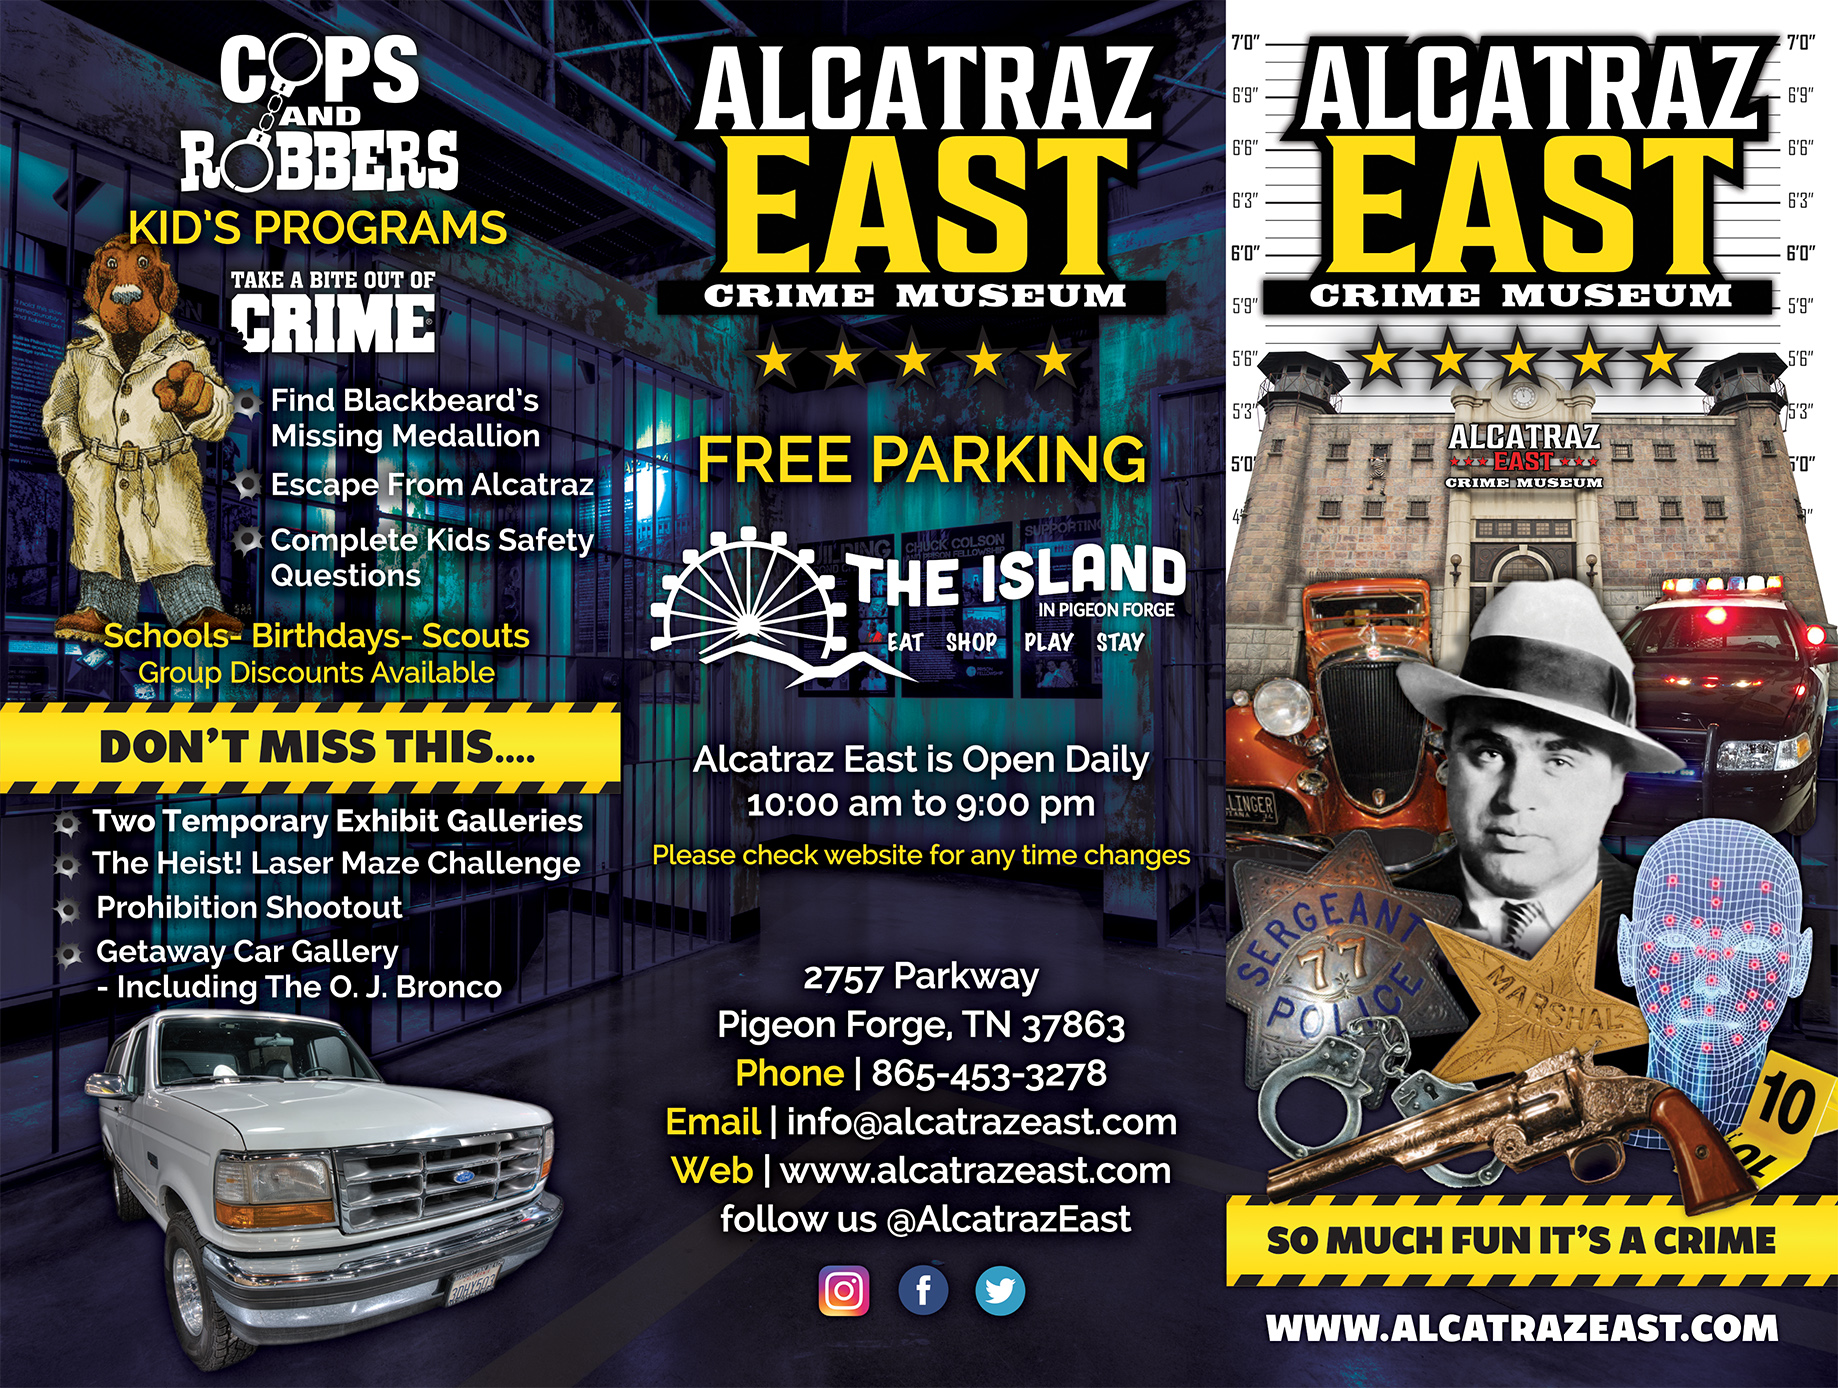 Alcatraz East Brochure 2018 Version - no coupon edit 5